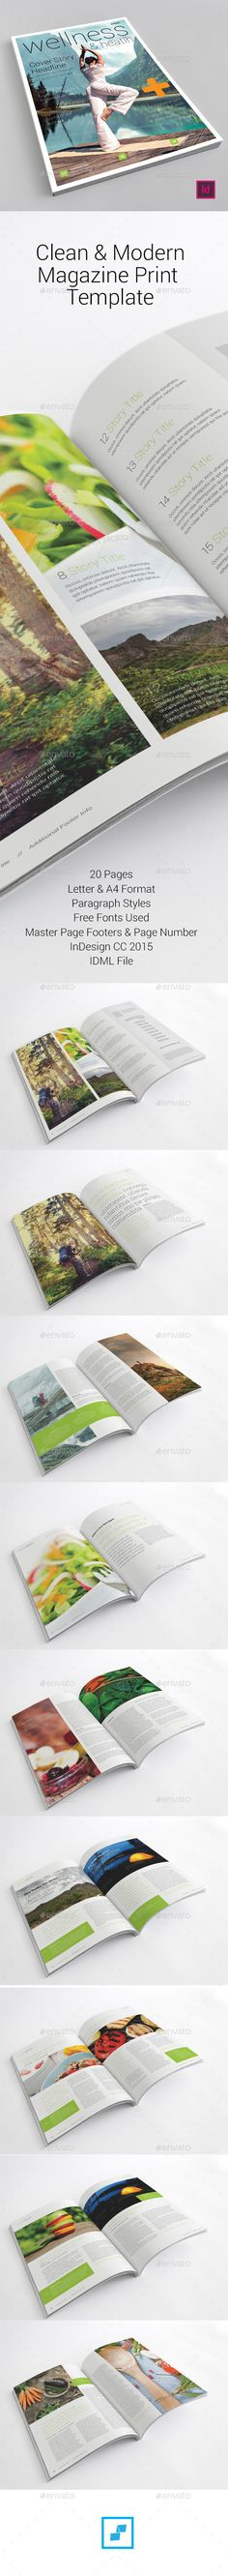 The clean and modern magazine print template can be used for any magazine or brochure that needs a clean, corporate and professional design.